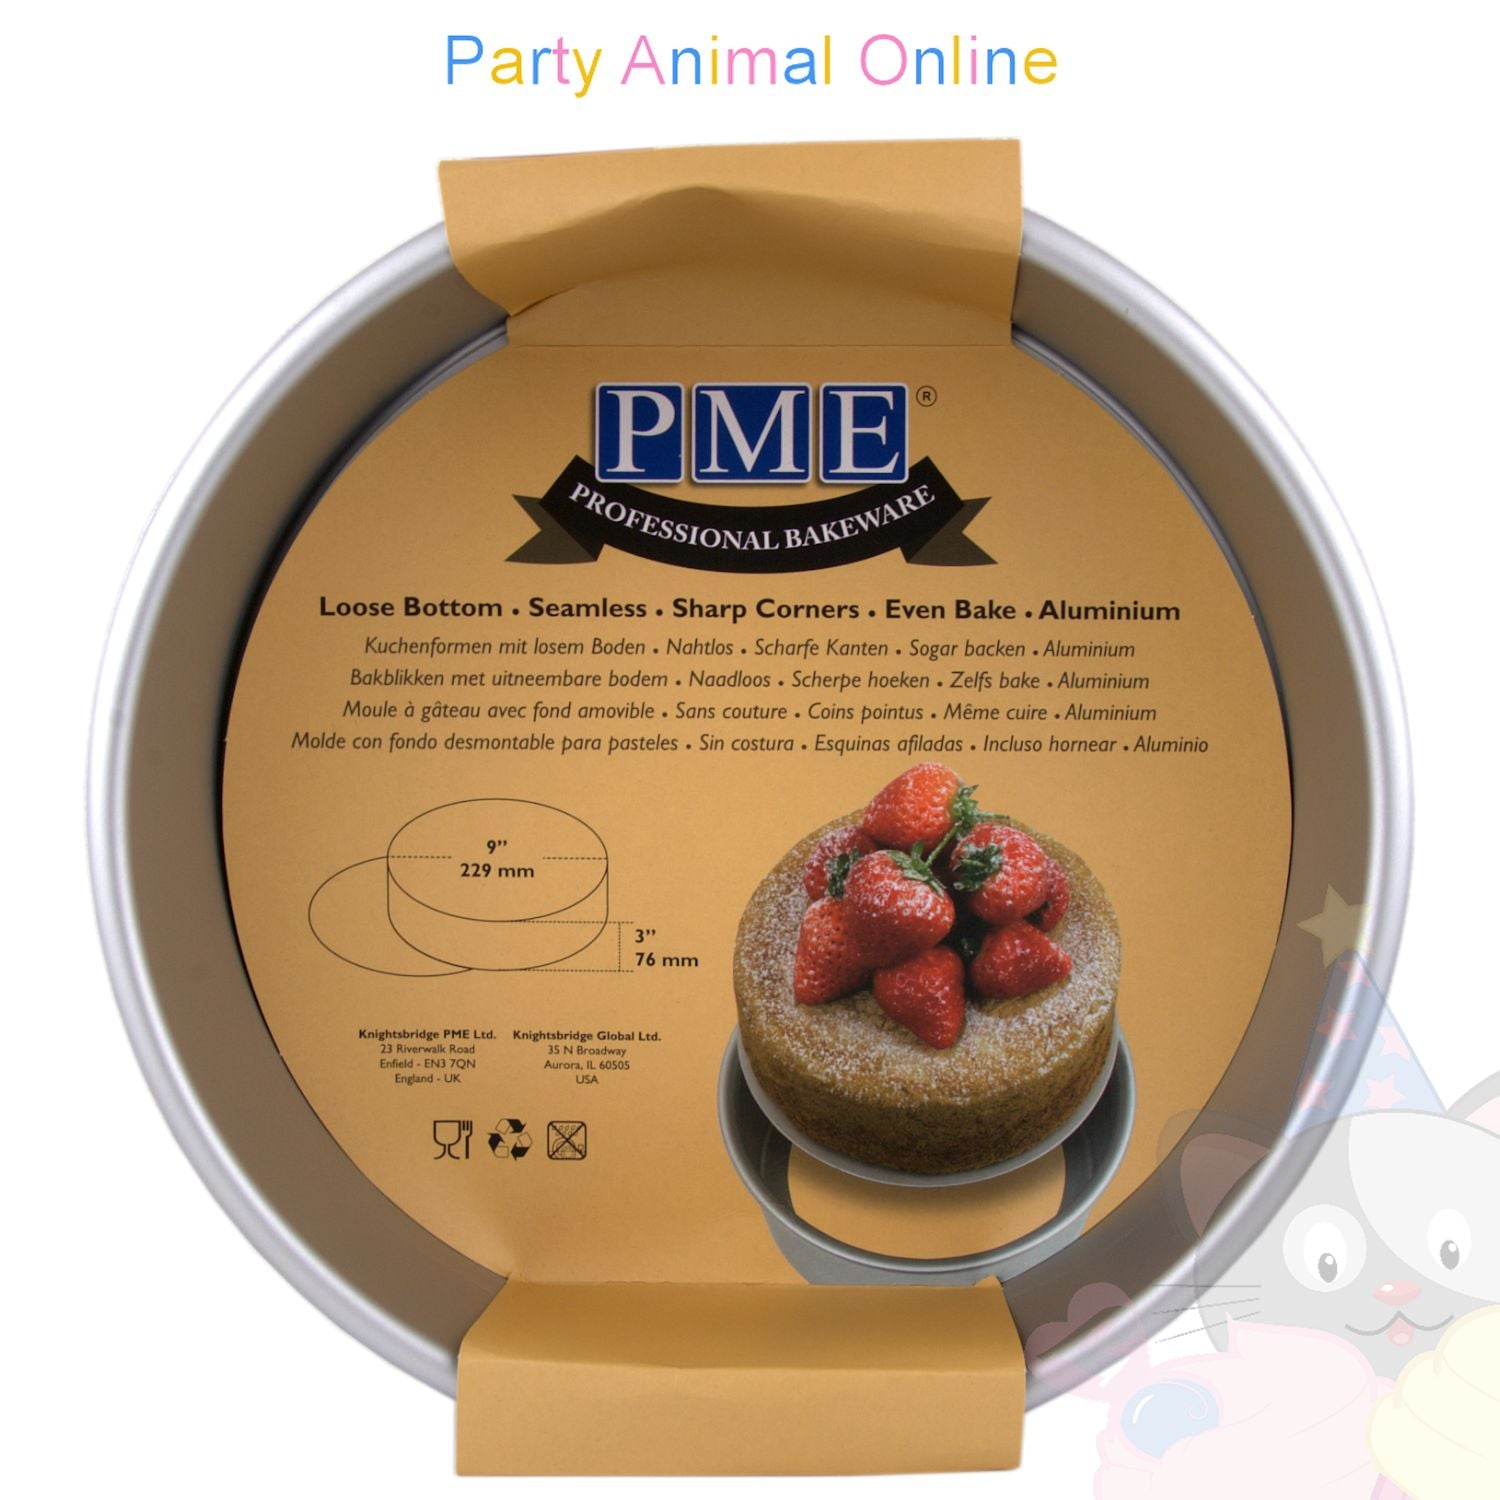 "9"" Round PME Loose Bottom Cake Pan"